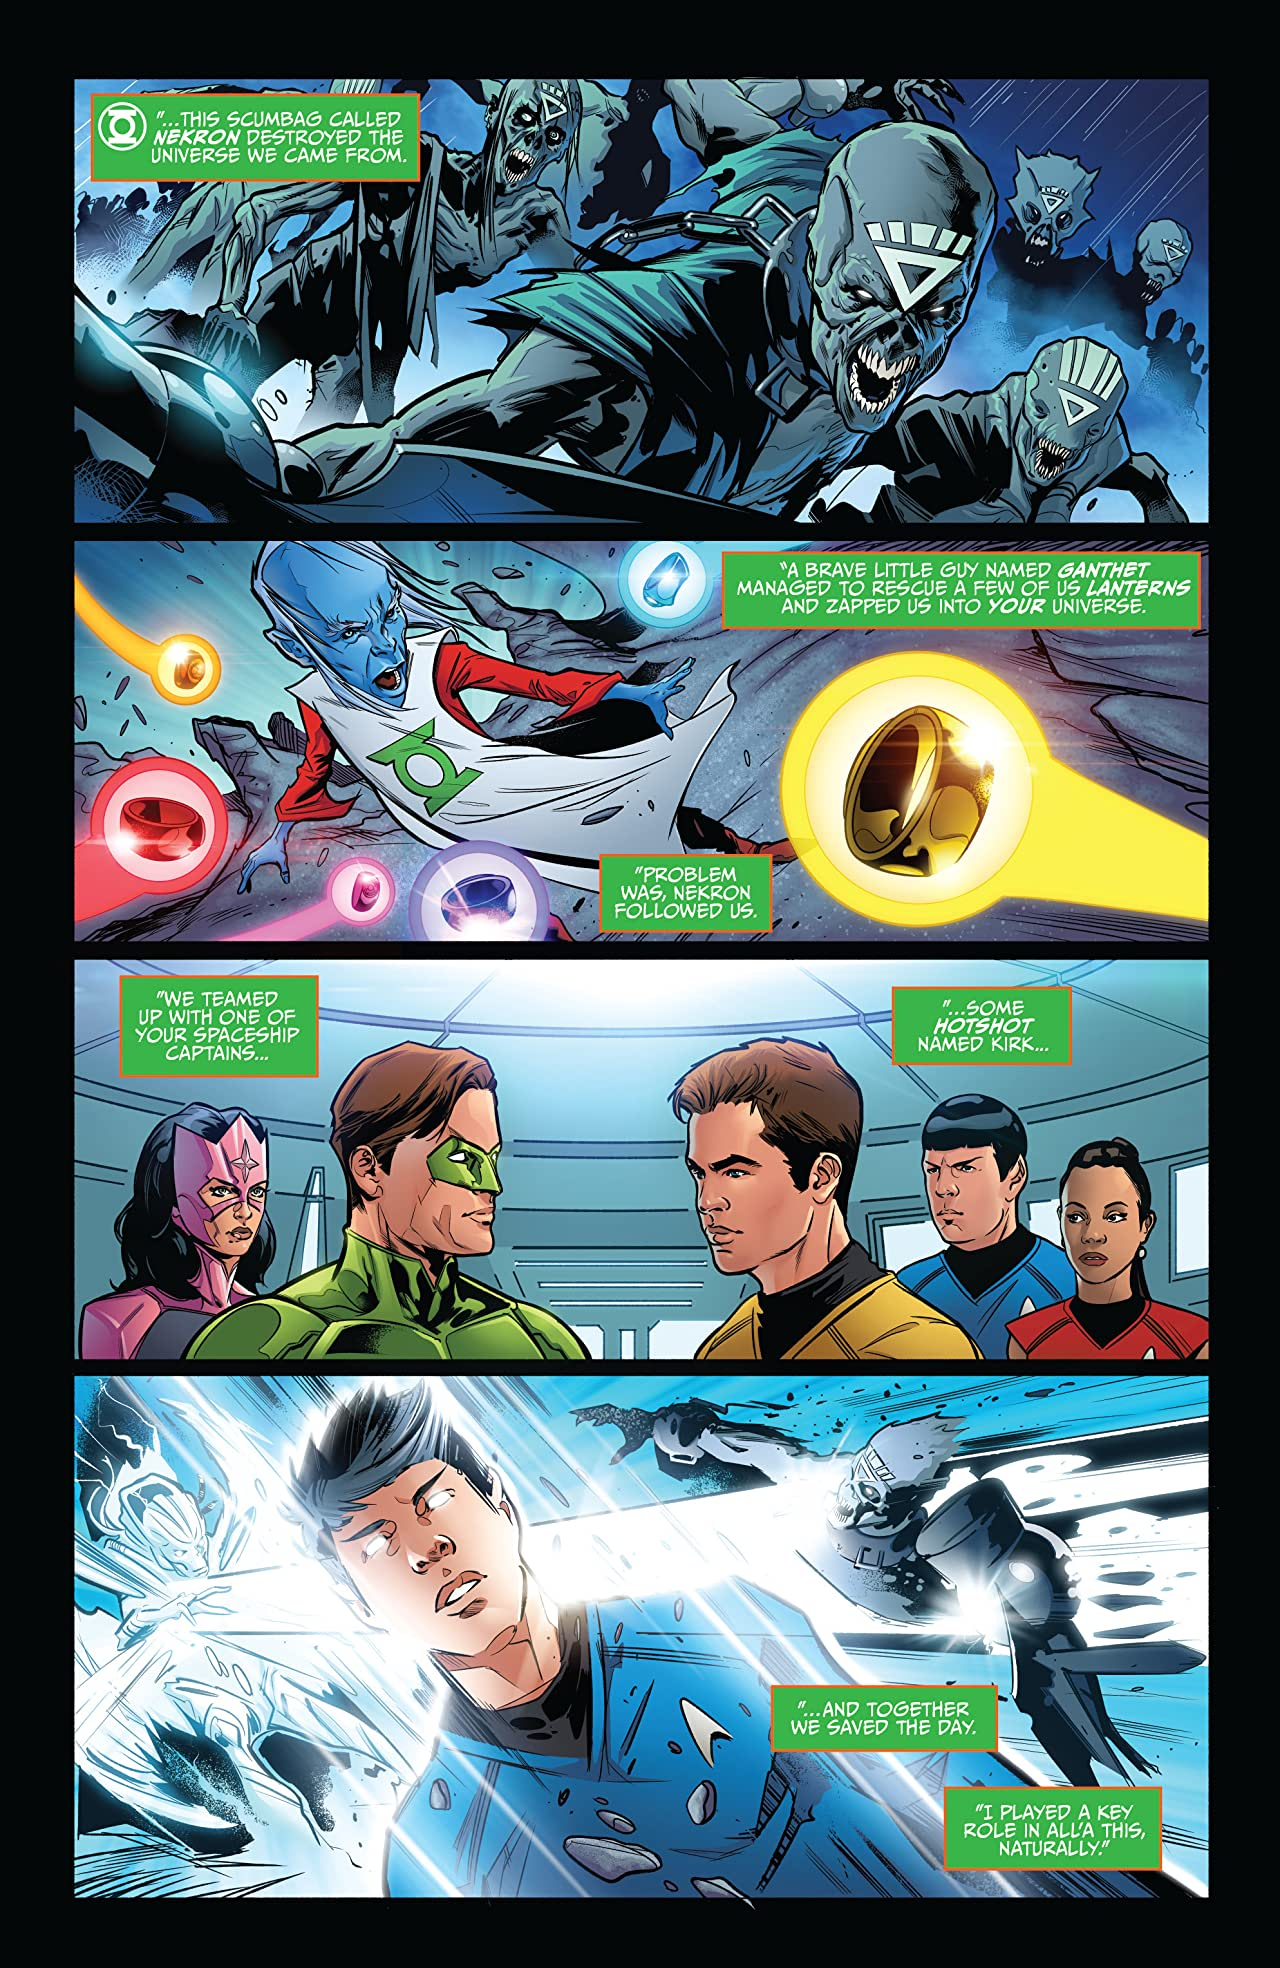 Star Trek/Green Lantern Vol. 2 #1